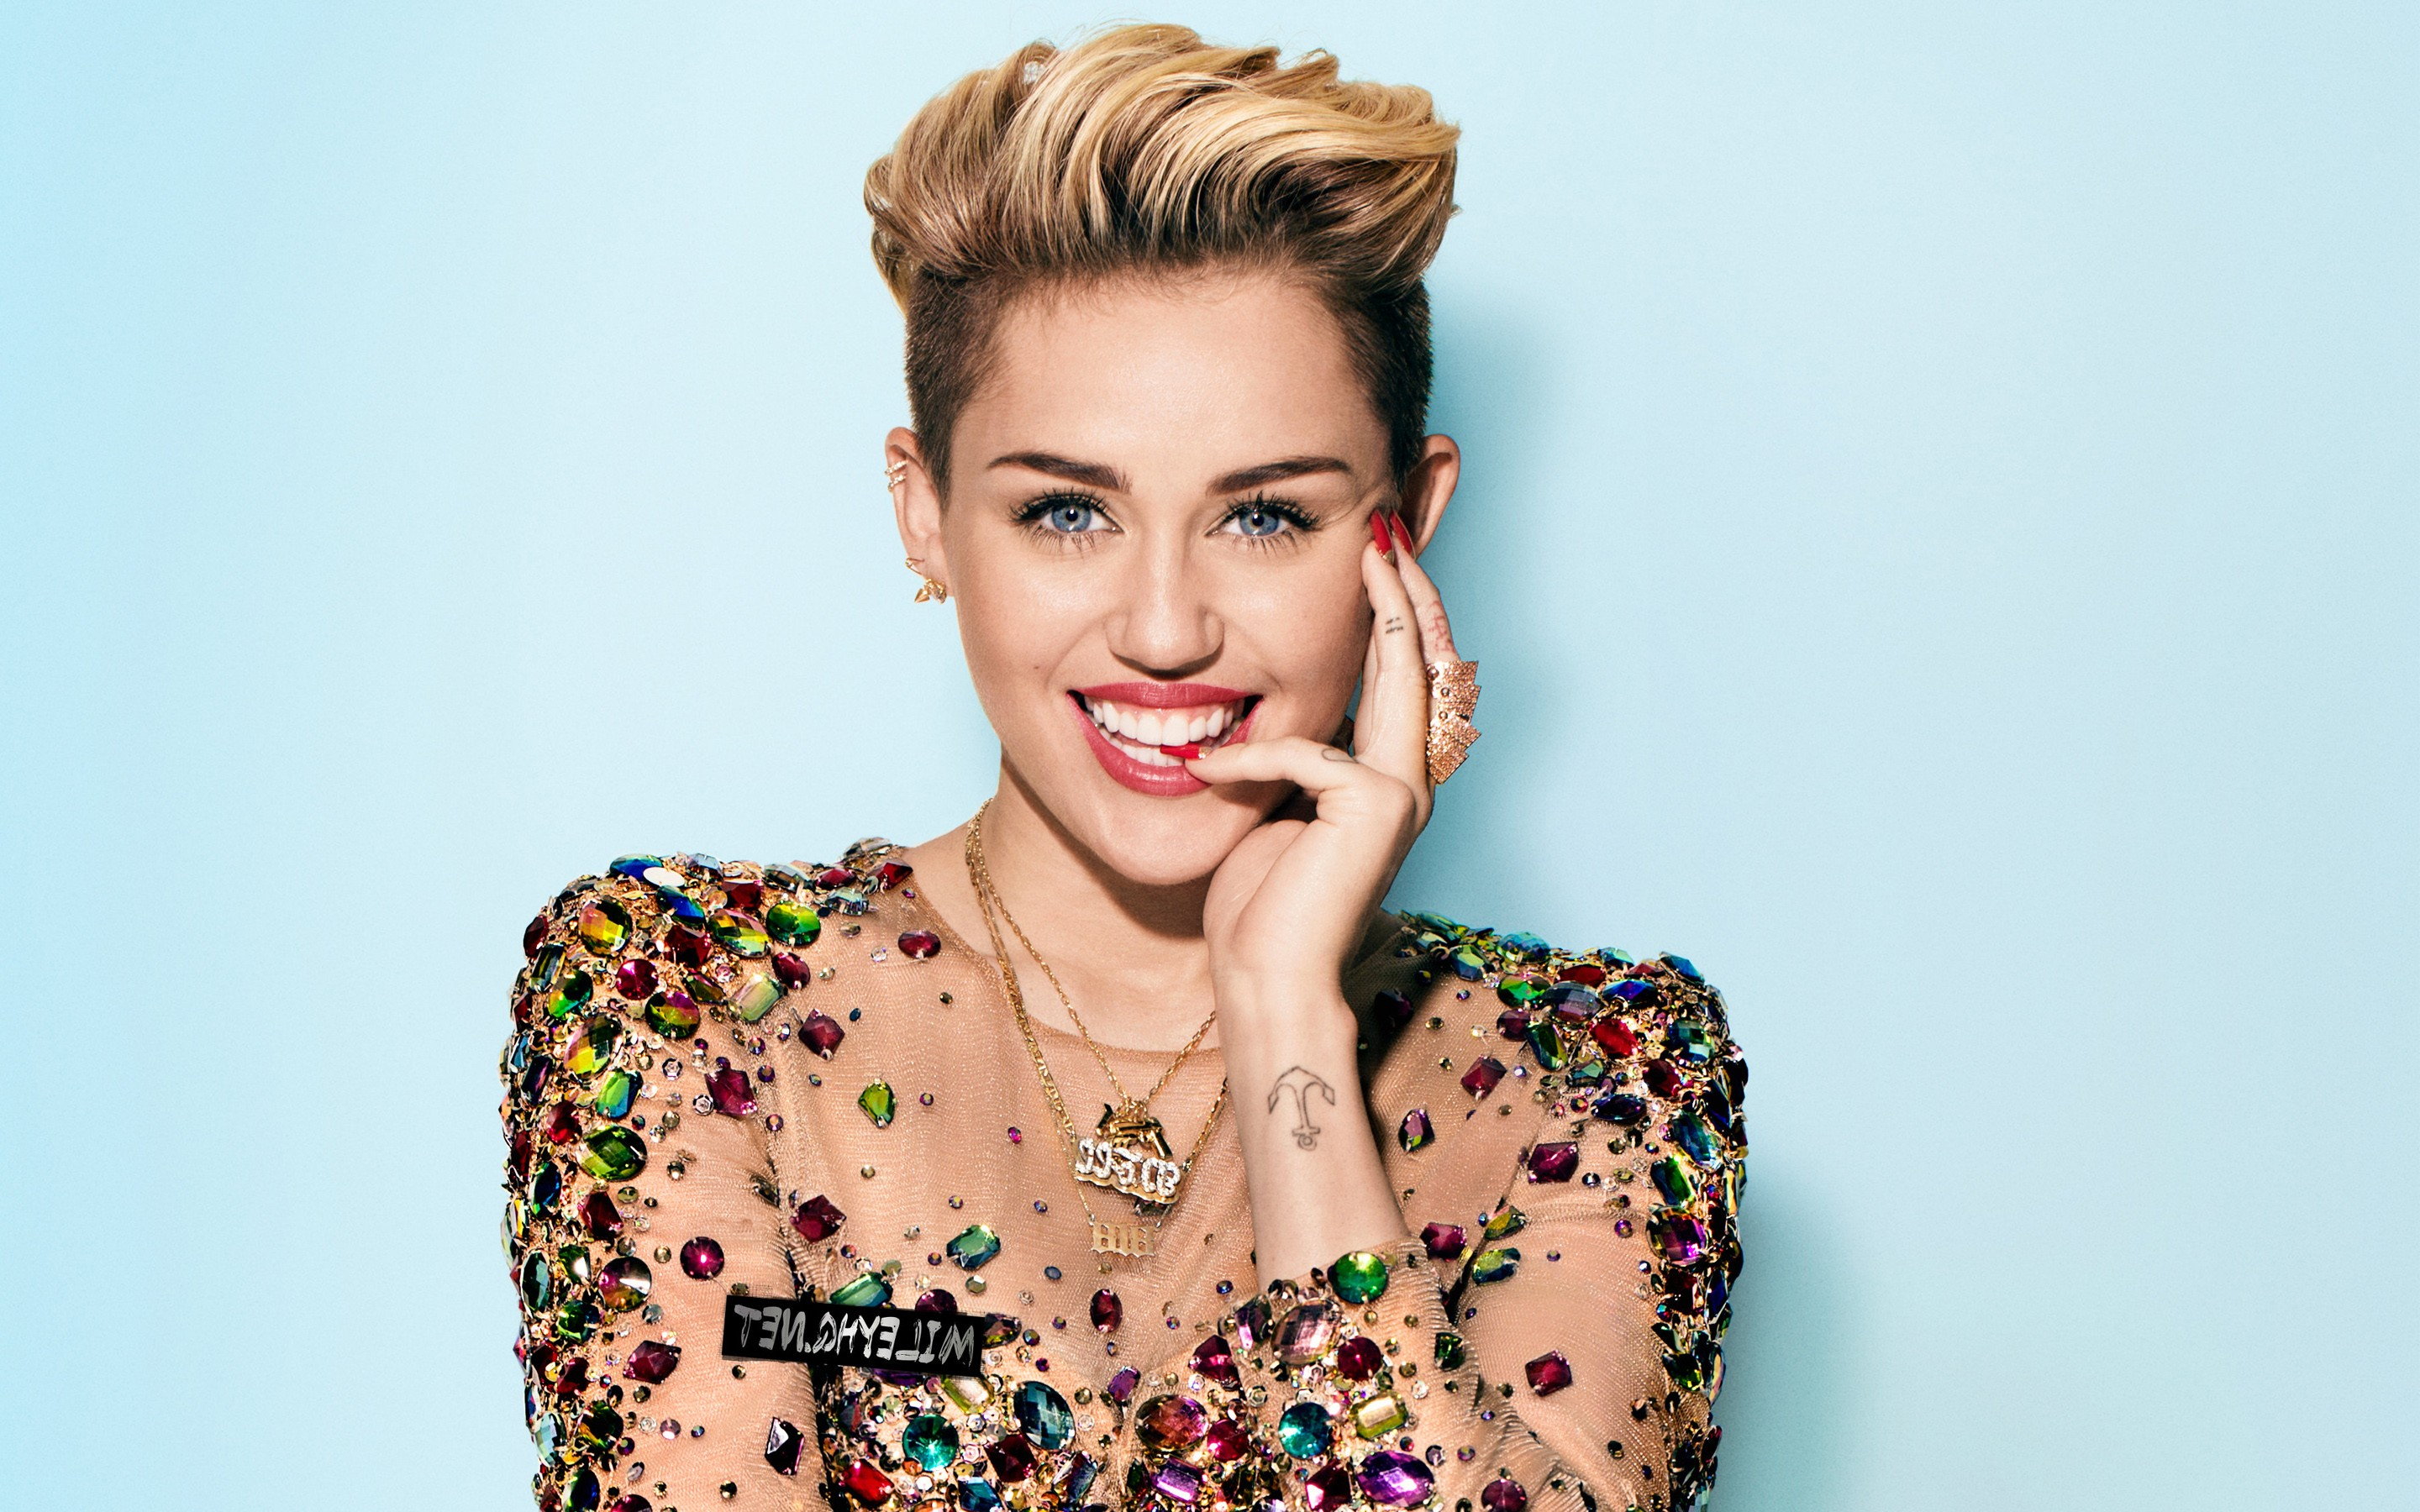 Miley Cyrus 2 | Music HD 4k Wallpapers Miley Cyrus